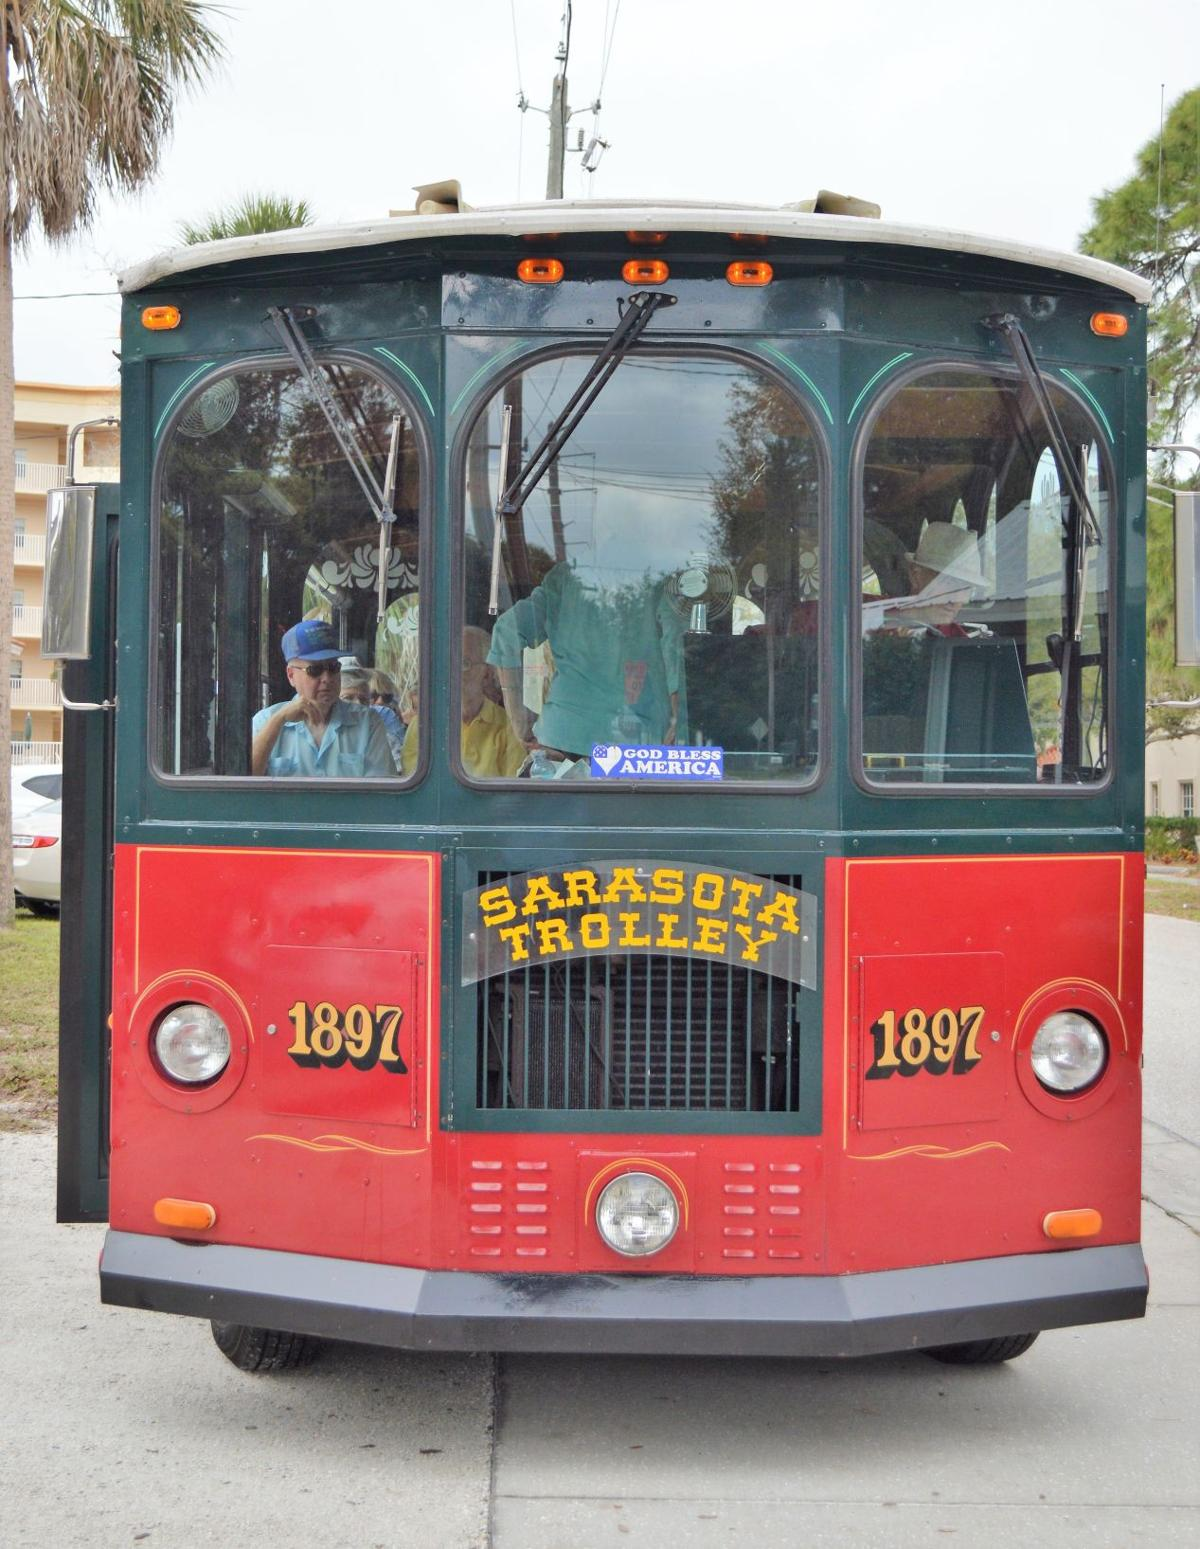 Learning about Sarasota's history in an open air trolley